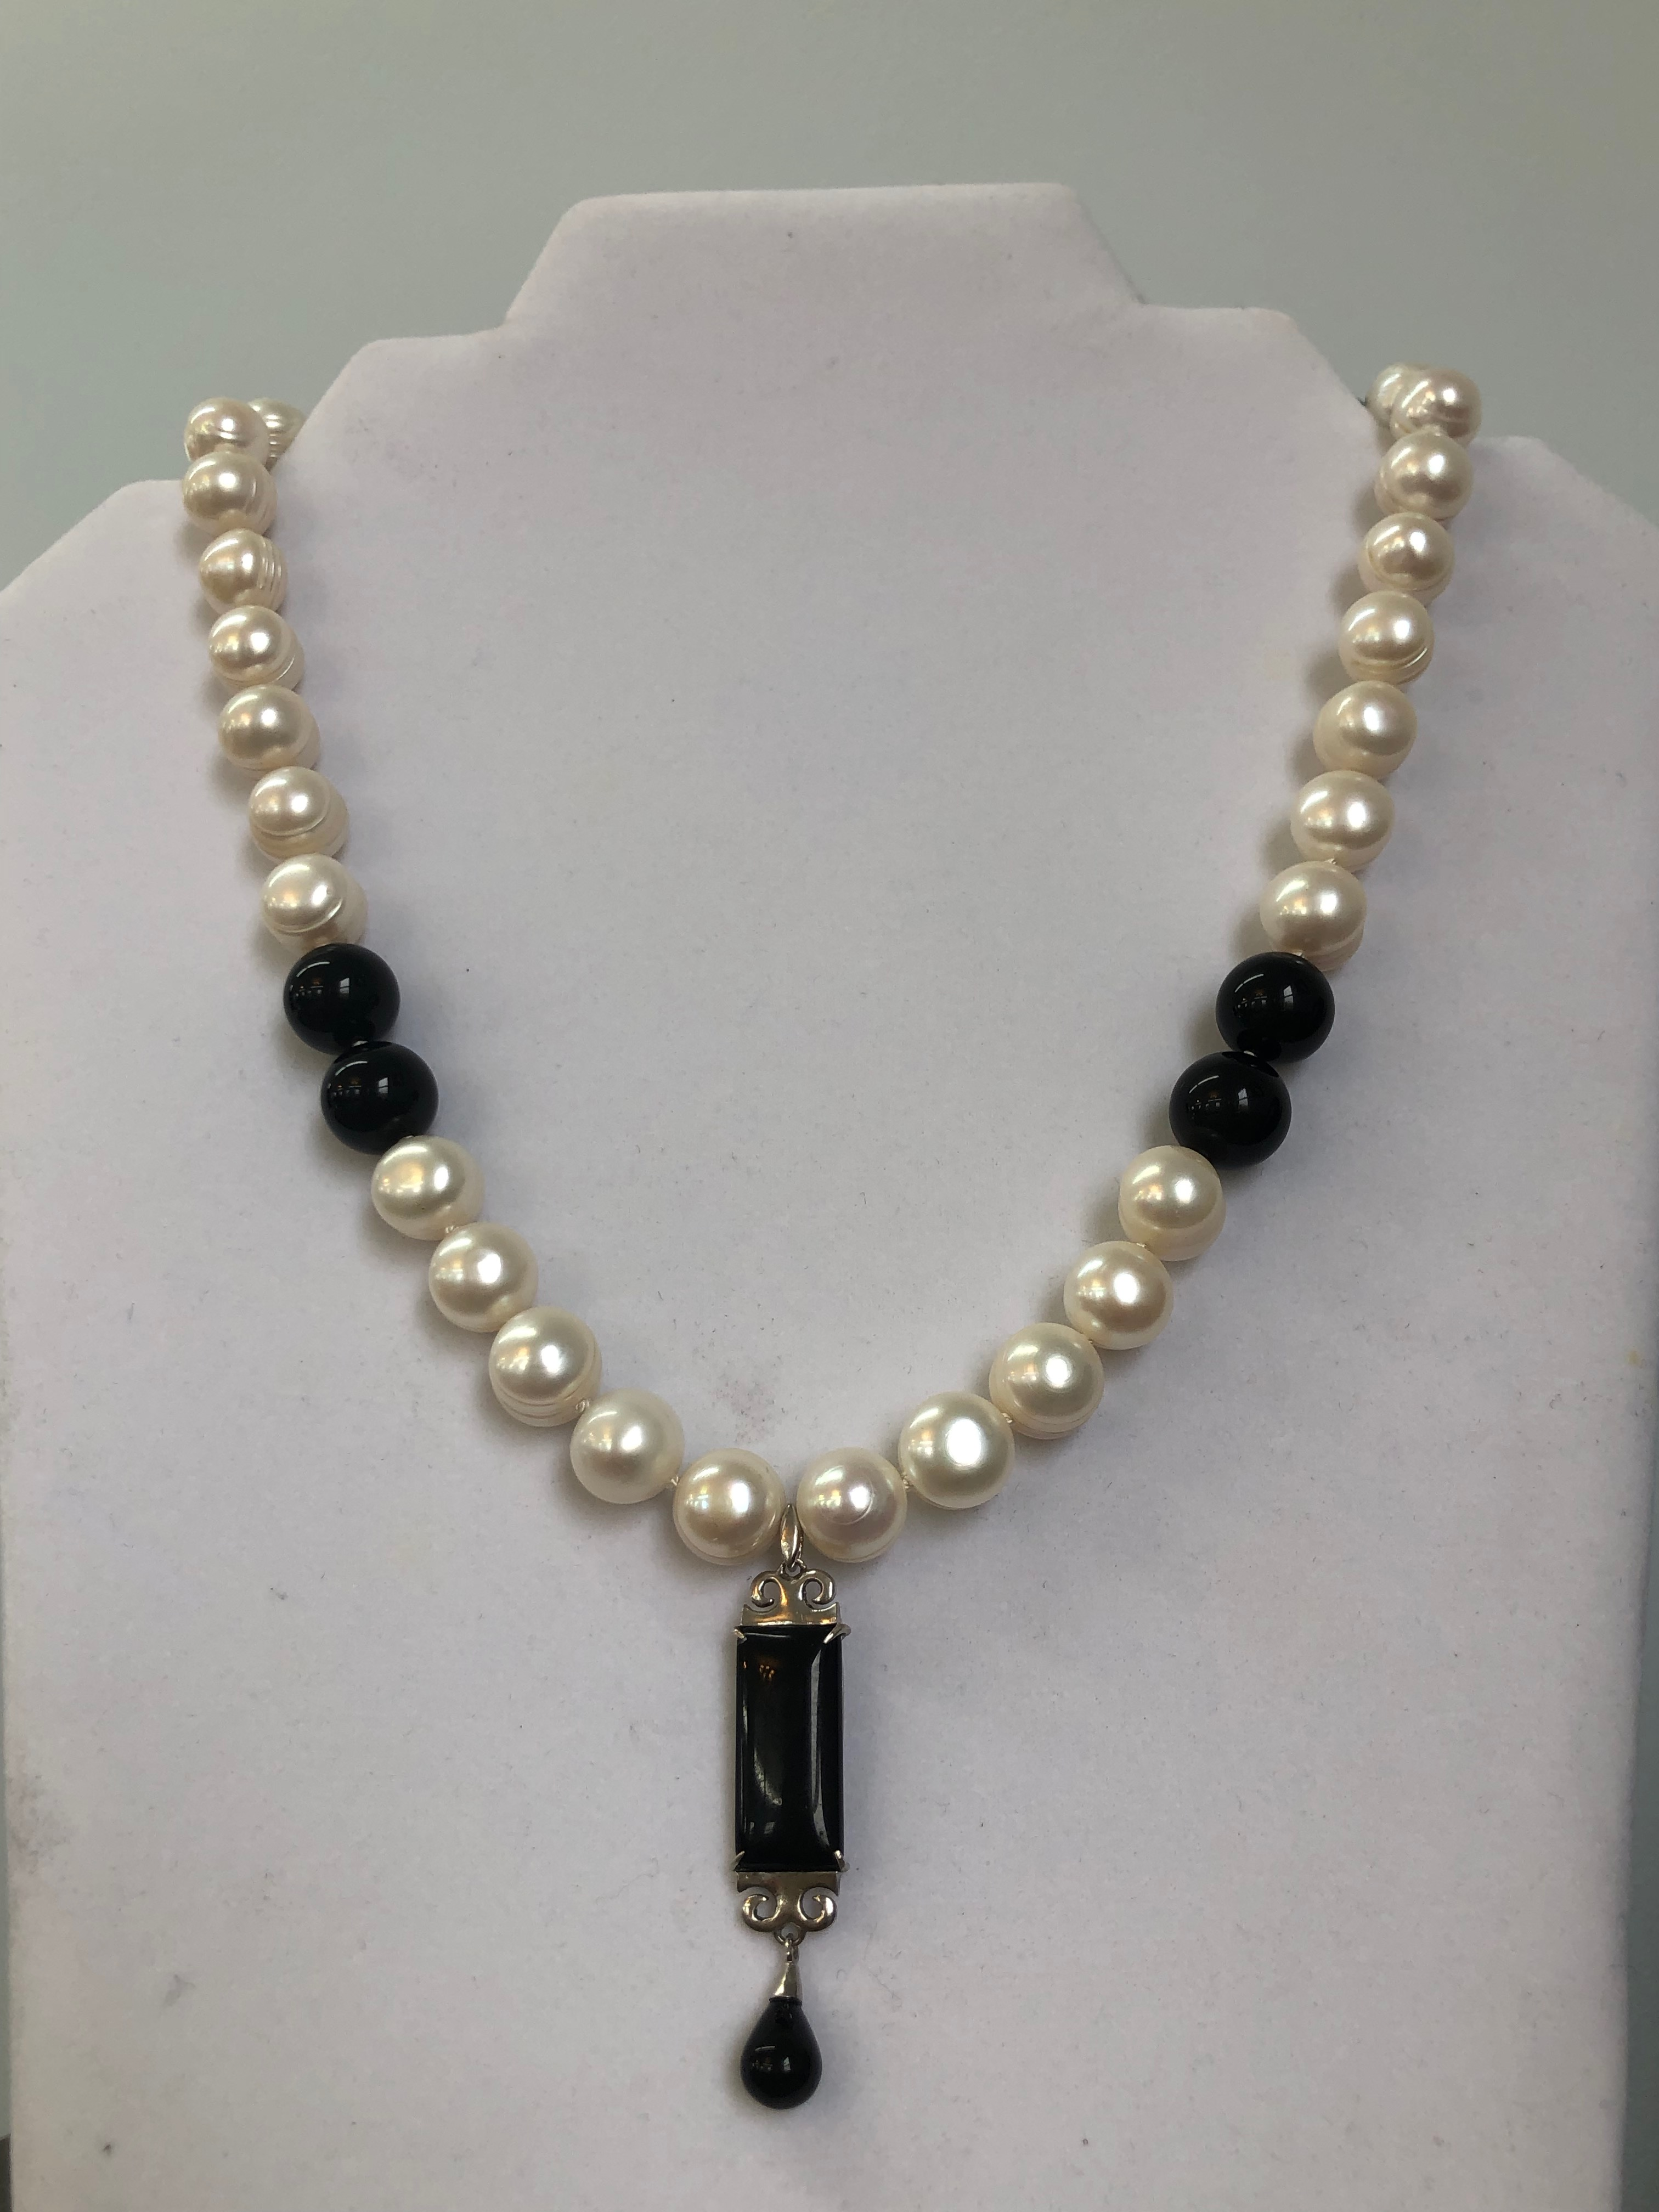 Freshwater 12mm Pearls w/12mm Black Onyx Necklace w/Sterling Silver & Onyx Pendant